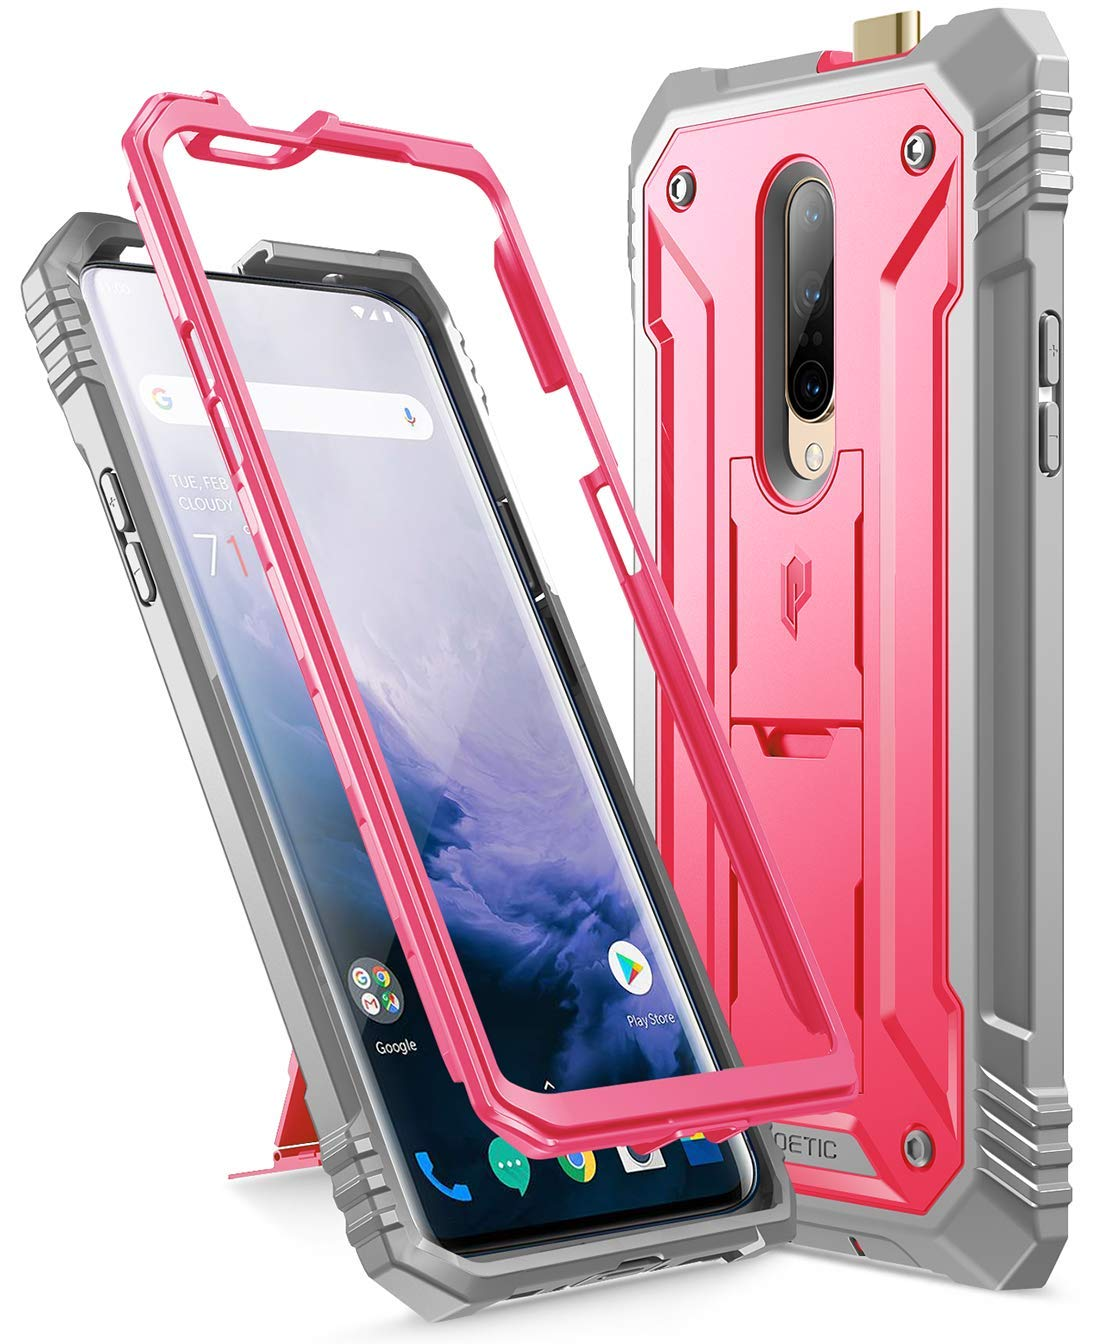 Poetic OnePlus 7 Pro Rugged Case with Kickstand, Full-Body Dual-Layer Shockproof Protective Cover, Built-in-Screen Protector, Revolution Series, for OnePlus 7 Pro (2019 Release), Pink